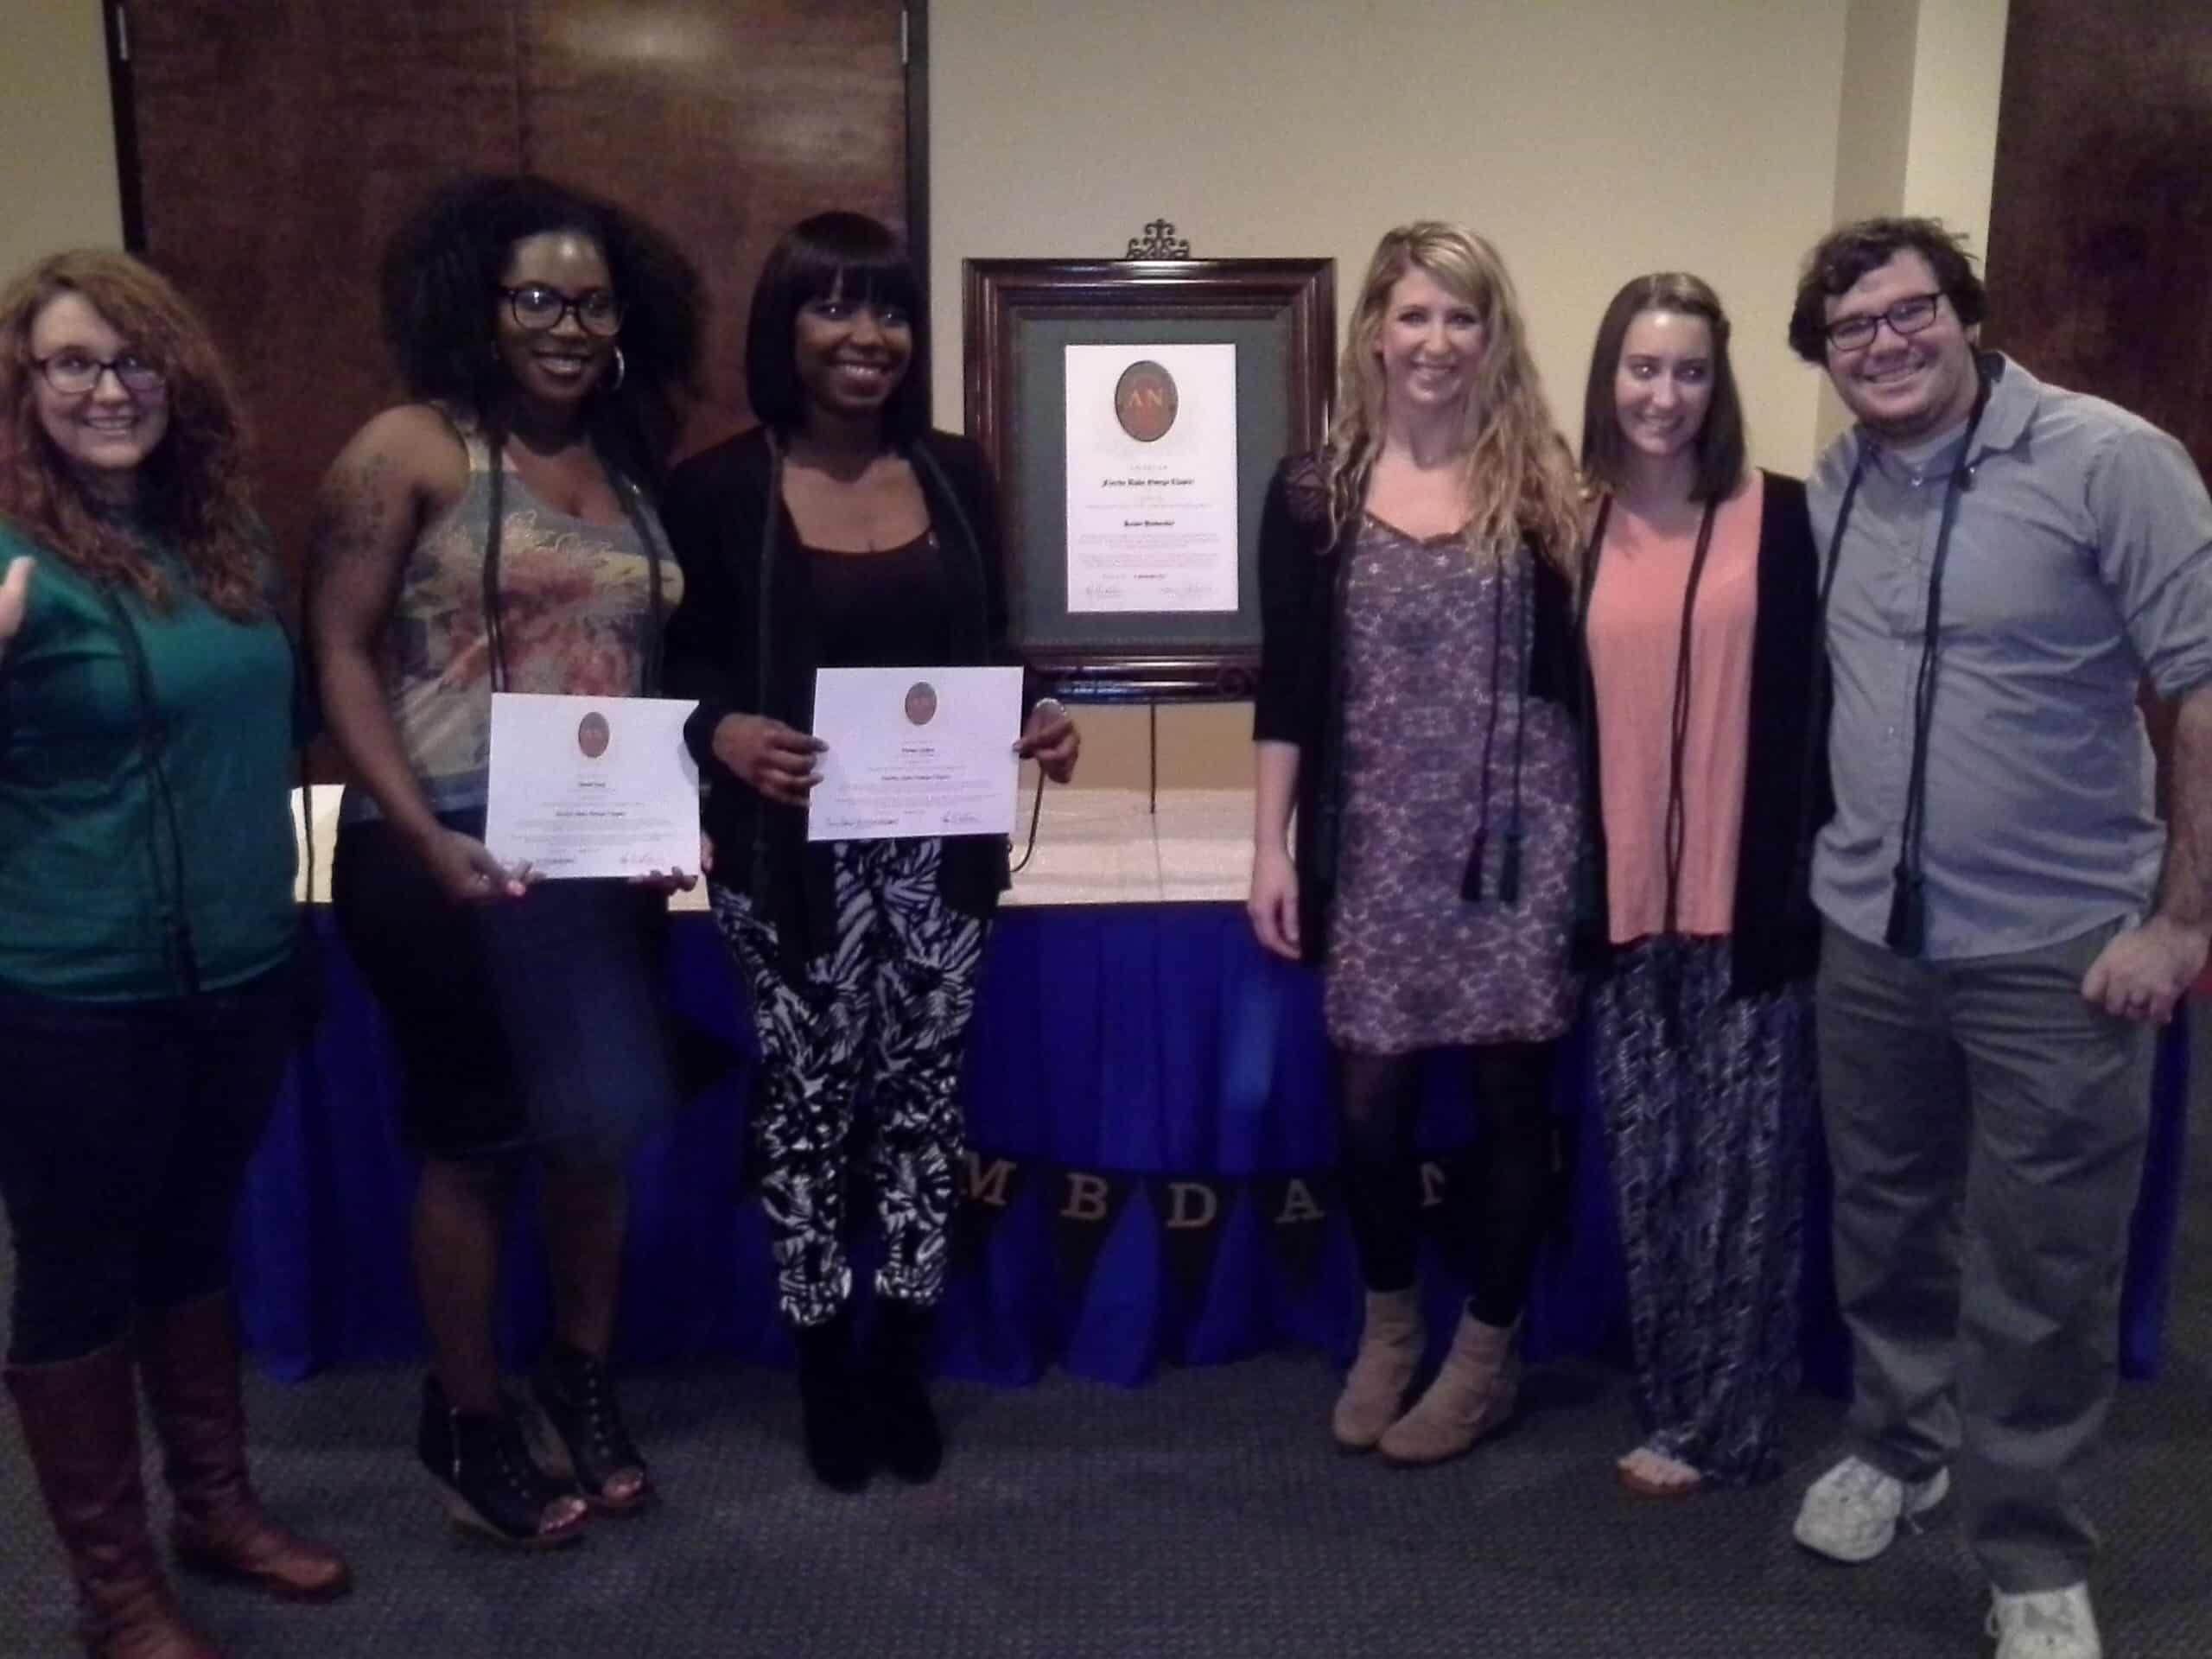 Tallahassee Holds Their Lamda Nu Induction Ceremony